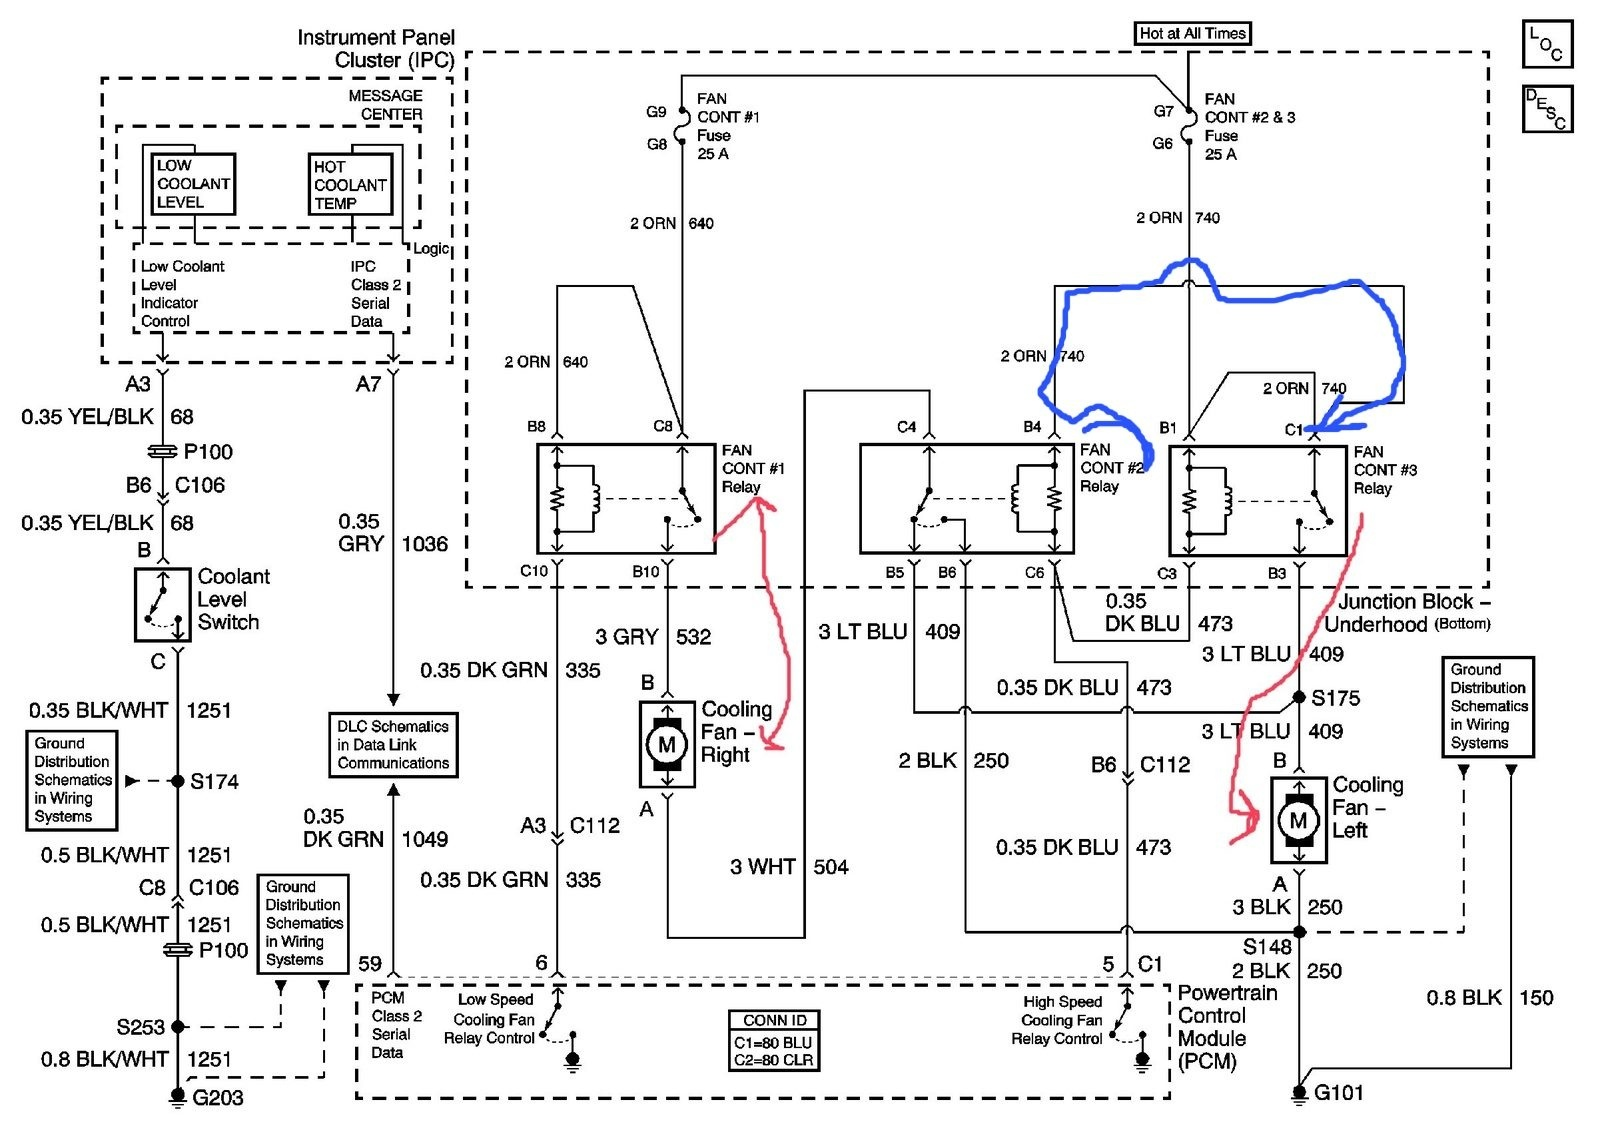 Wiring Diagram For 2003 Bmw 530i on 1999 bmw 540i fuse diagram